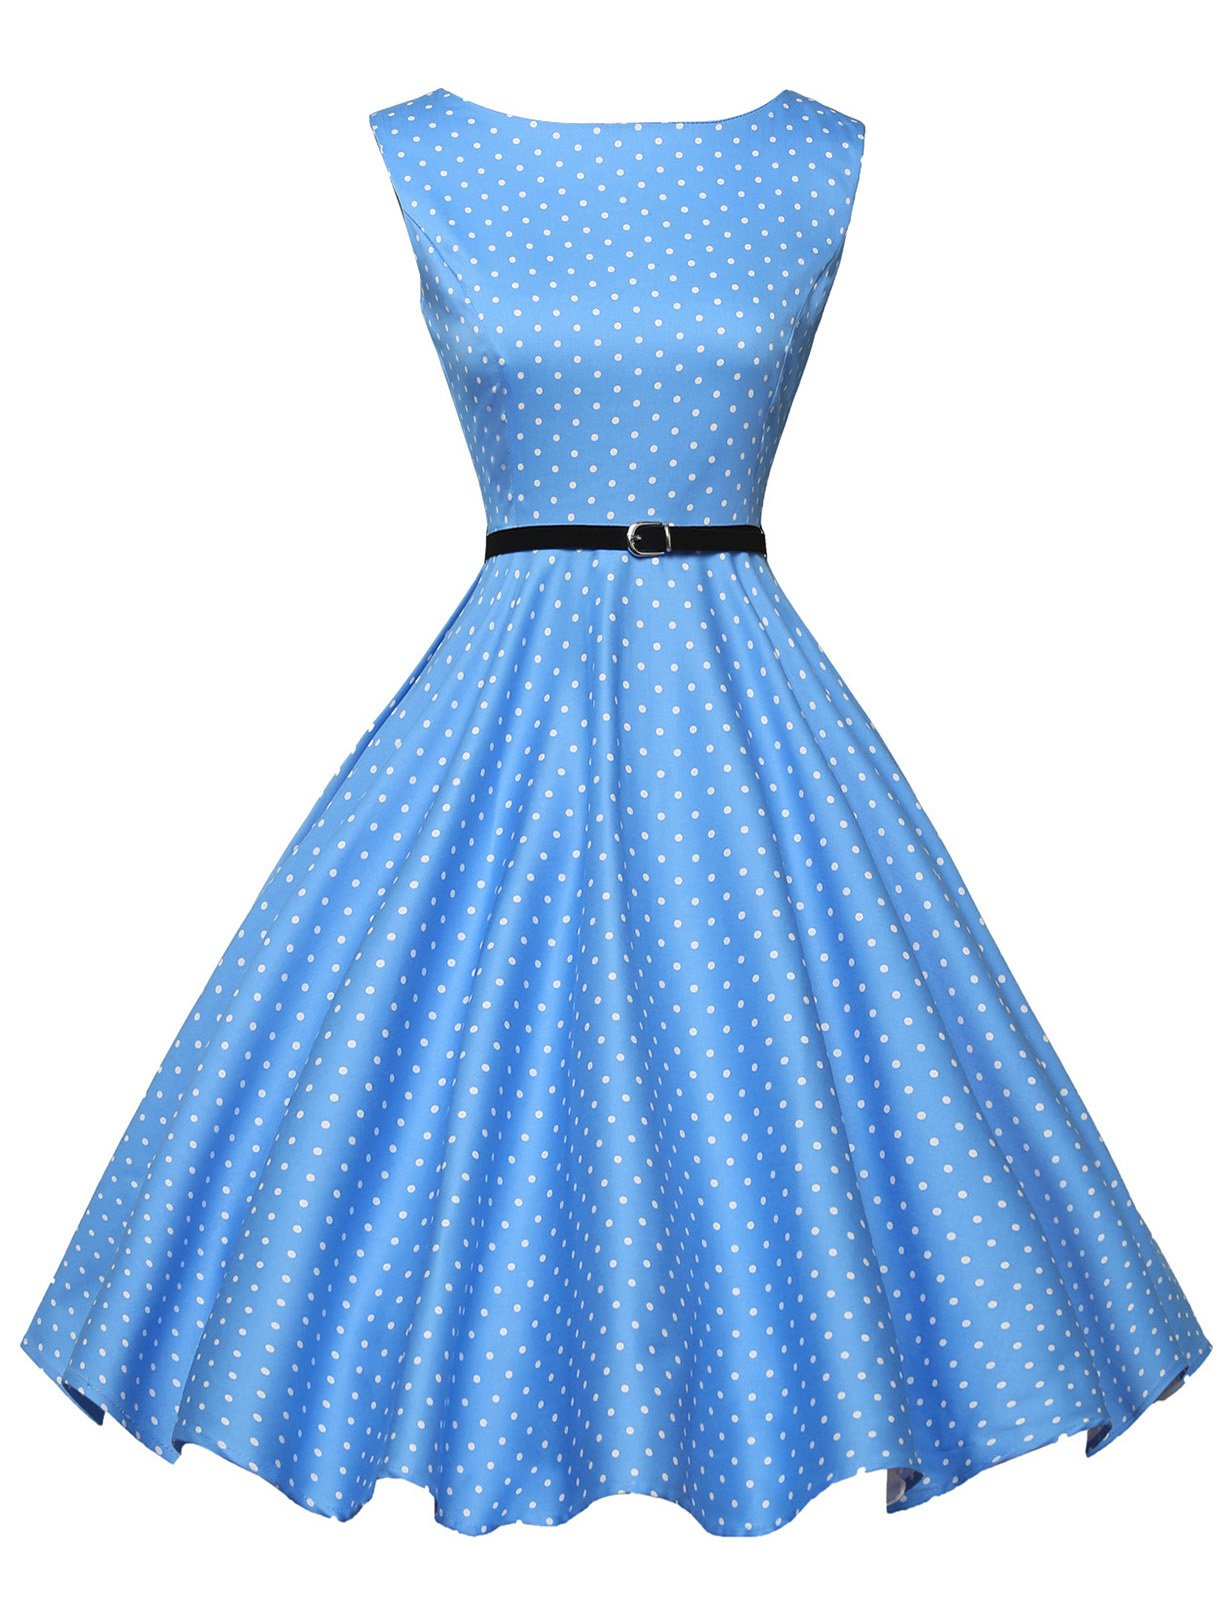 GRACE KARIN Sleeveless 50s Rockabilly Dresses For Women Short Floral-01 Small